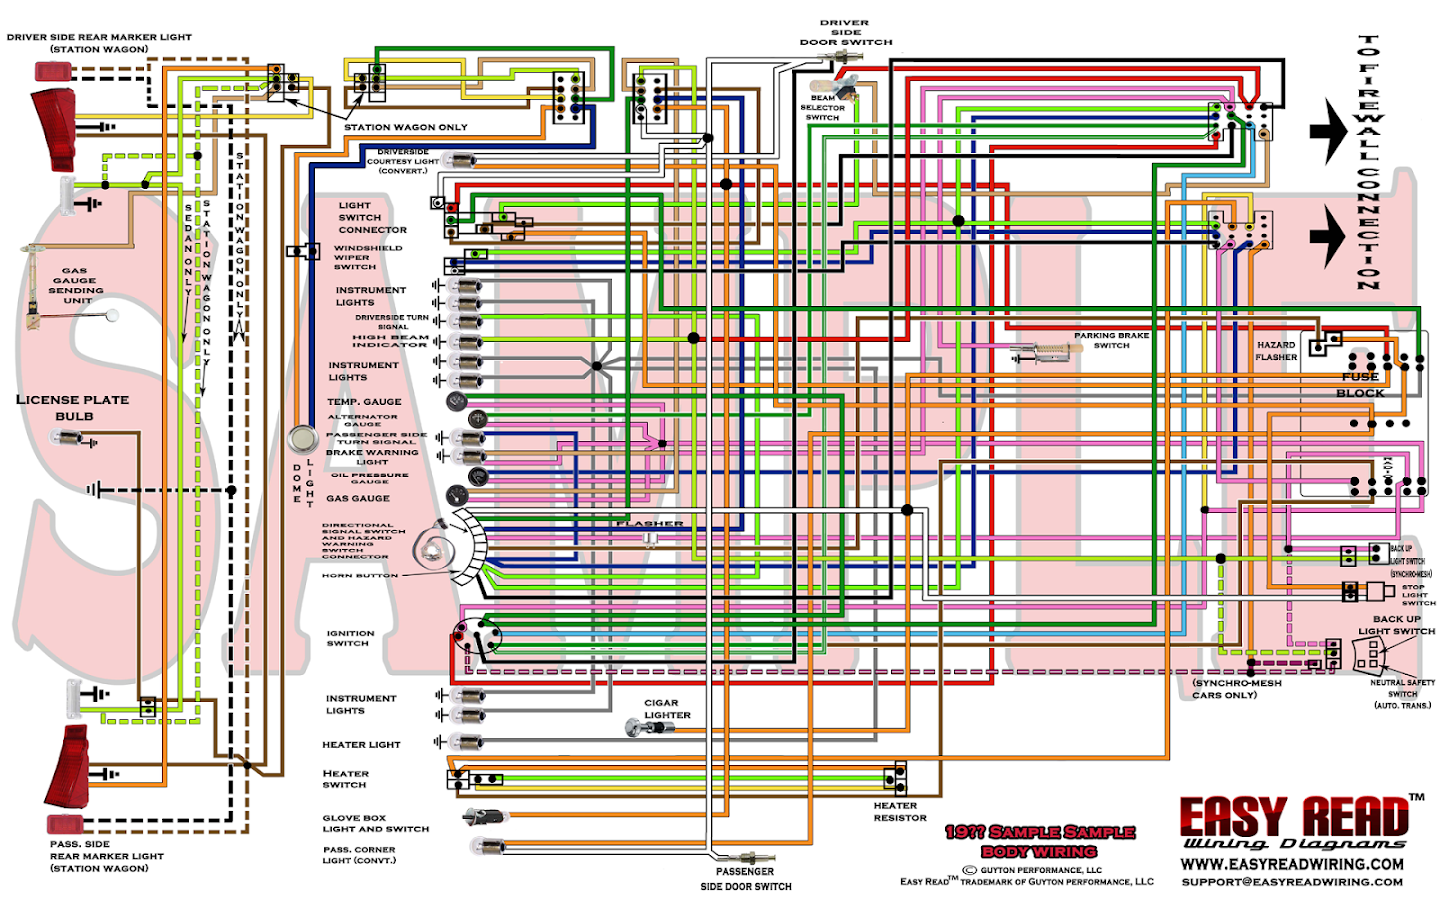 1970 chevelle wiring diagram - android apps on google play 1969 malibu wiring diagrams 2007 malibu wiring diagrams